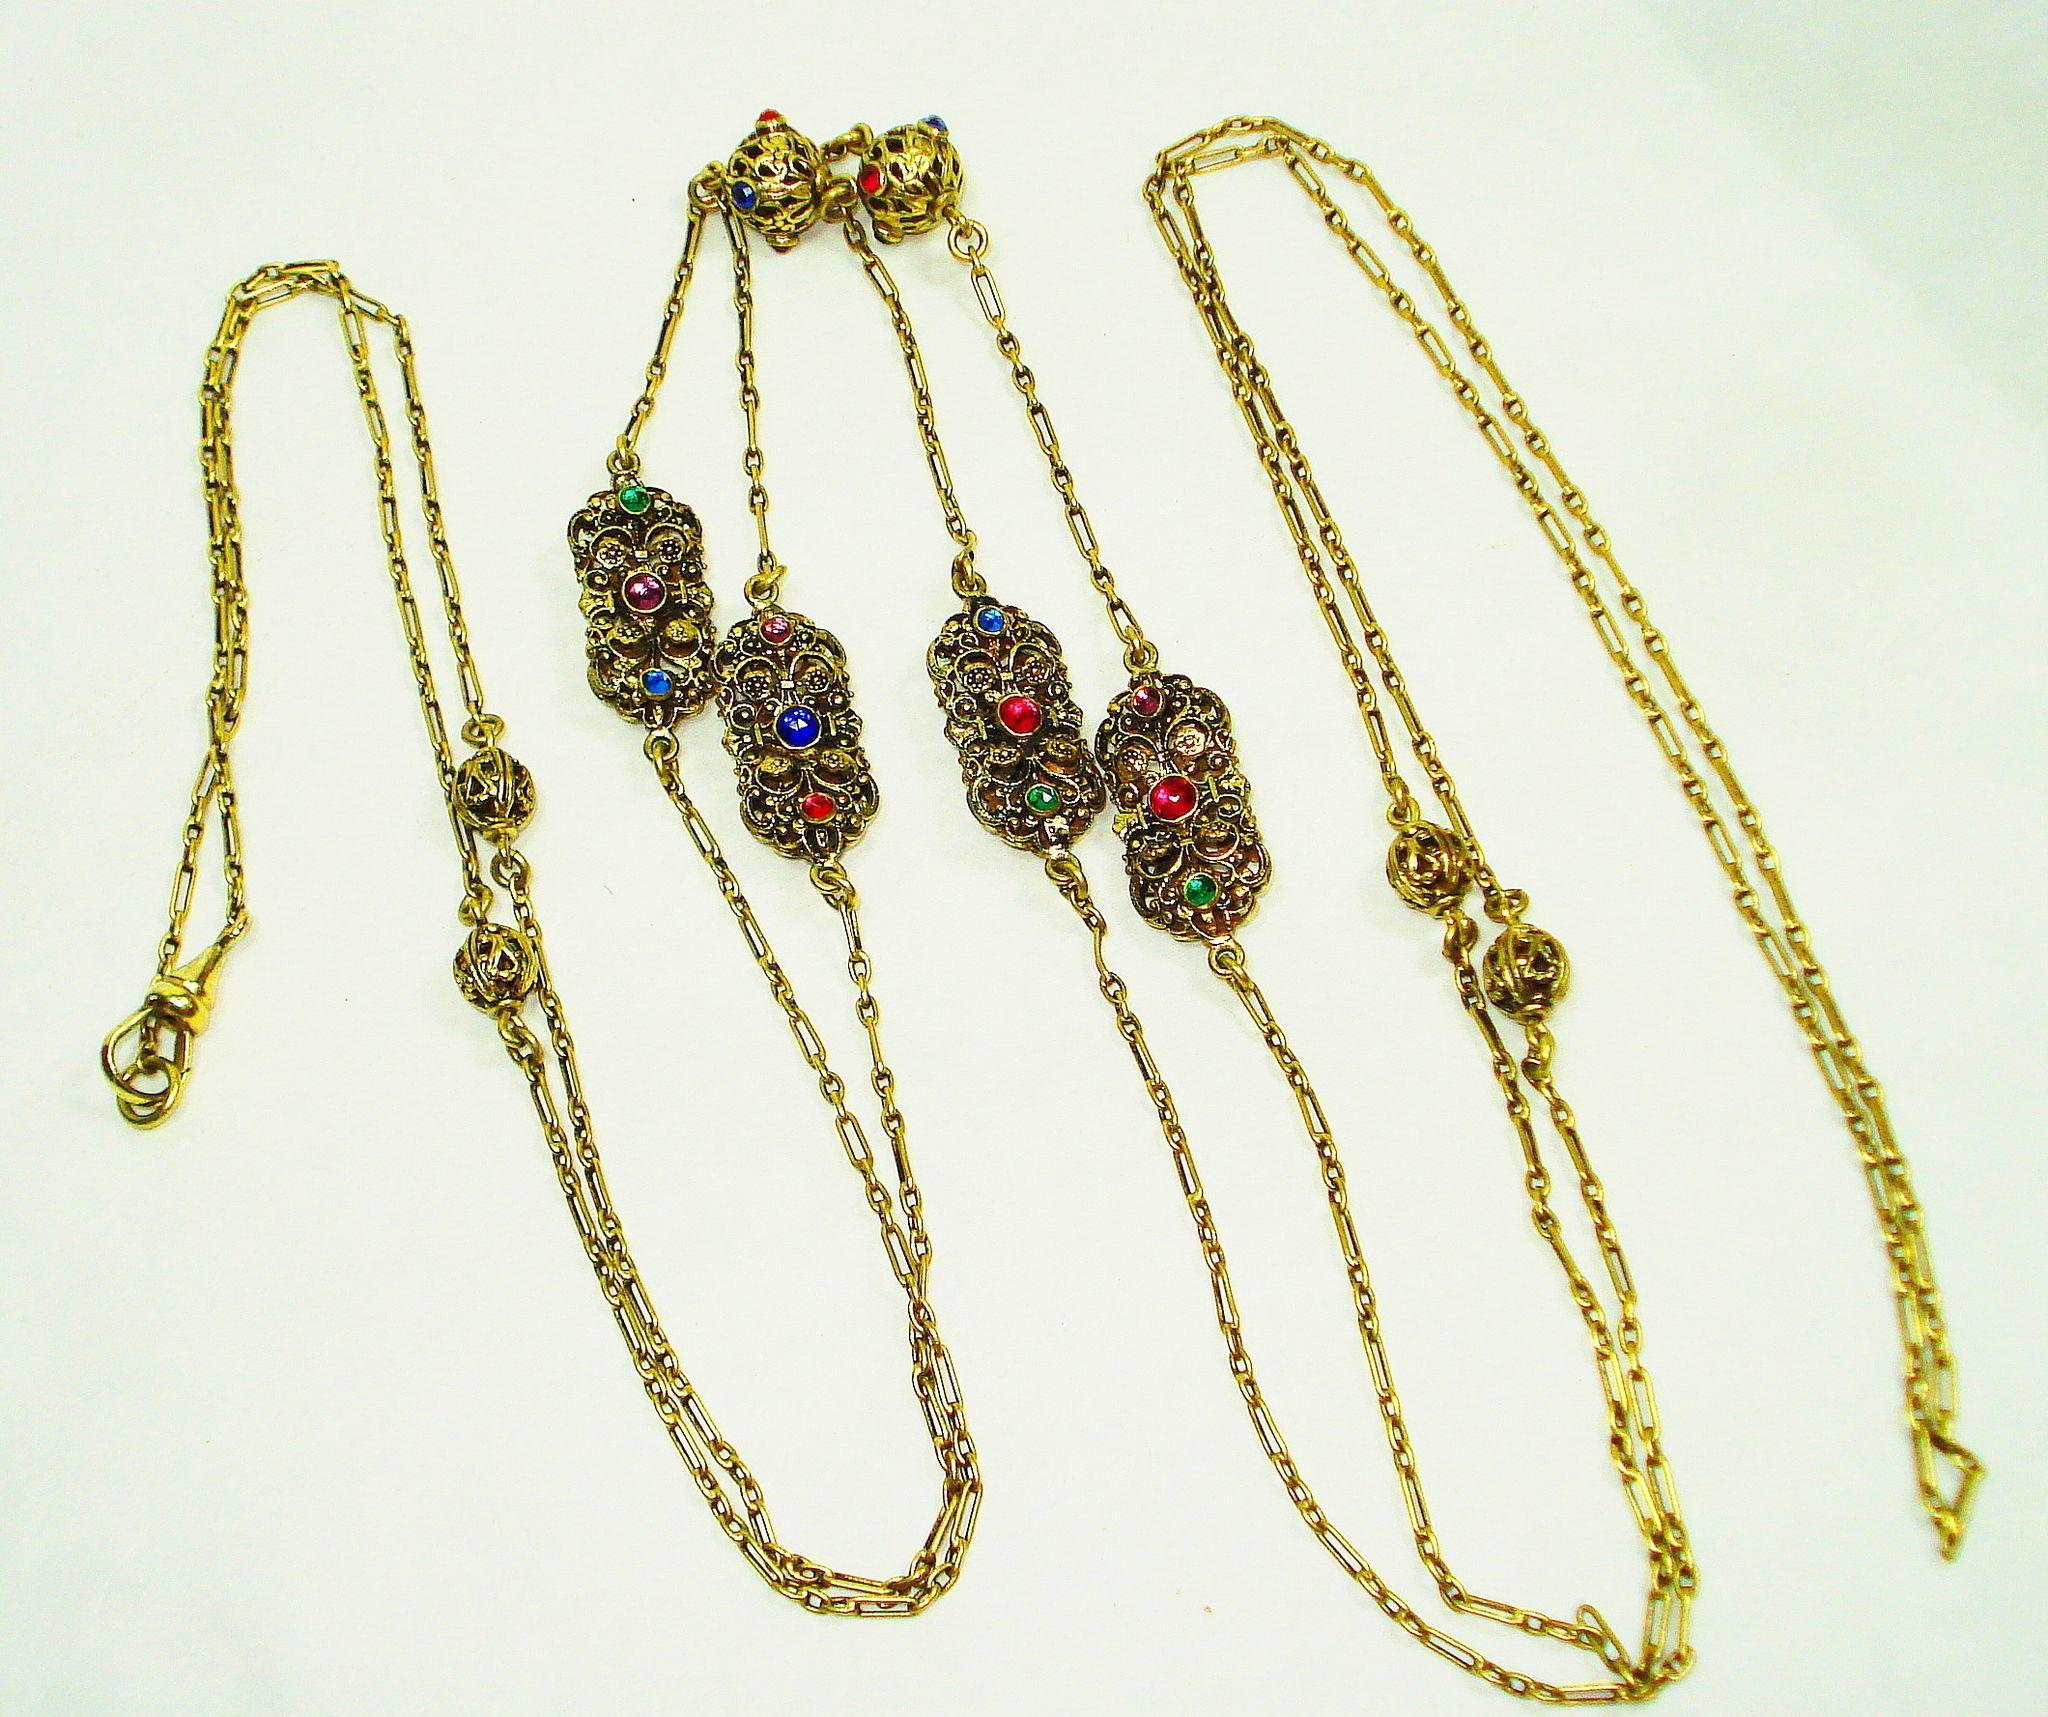 Exquisite Victorian Jeweled Czech Muff Chain Guard / Watch Chain Necklace